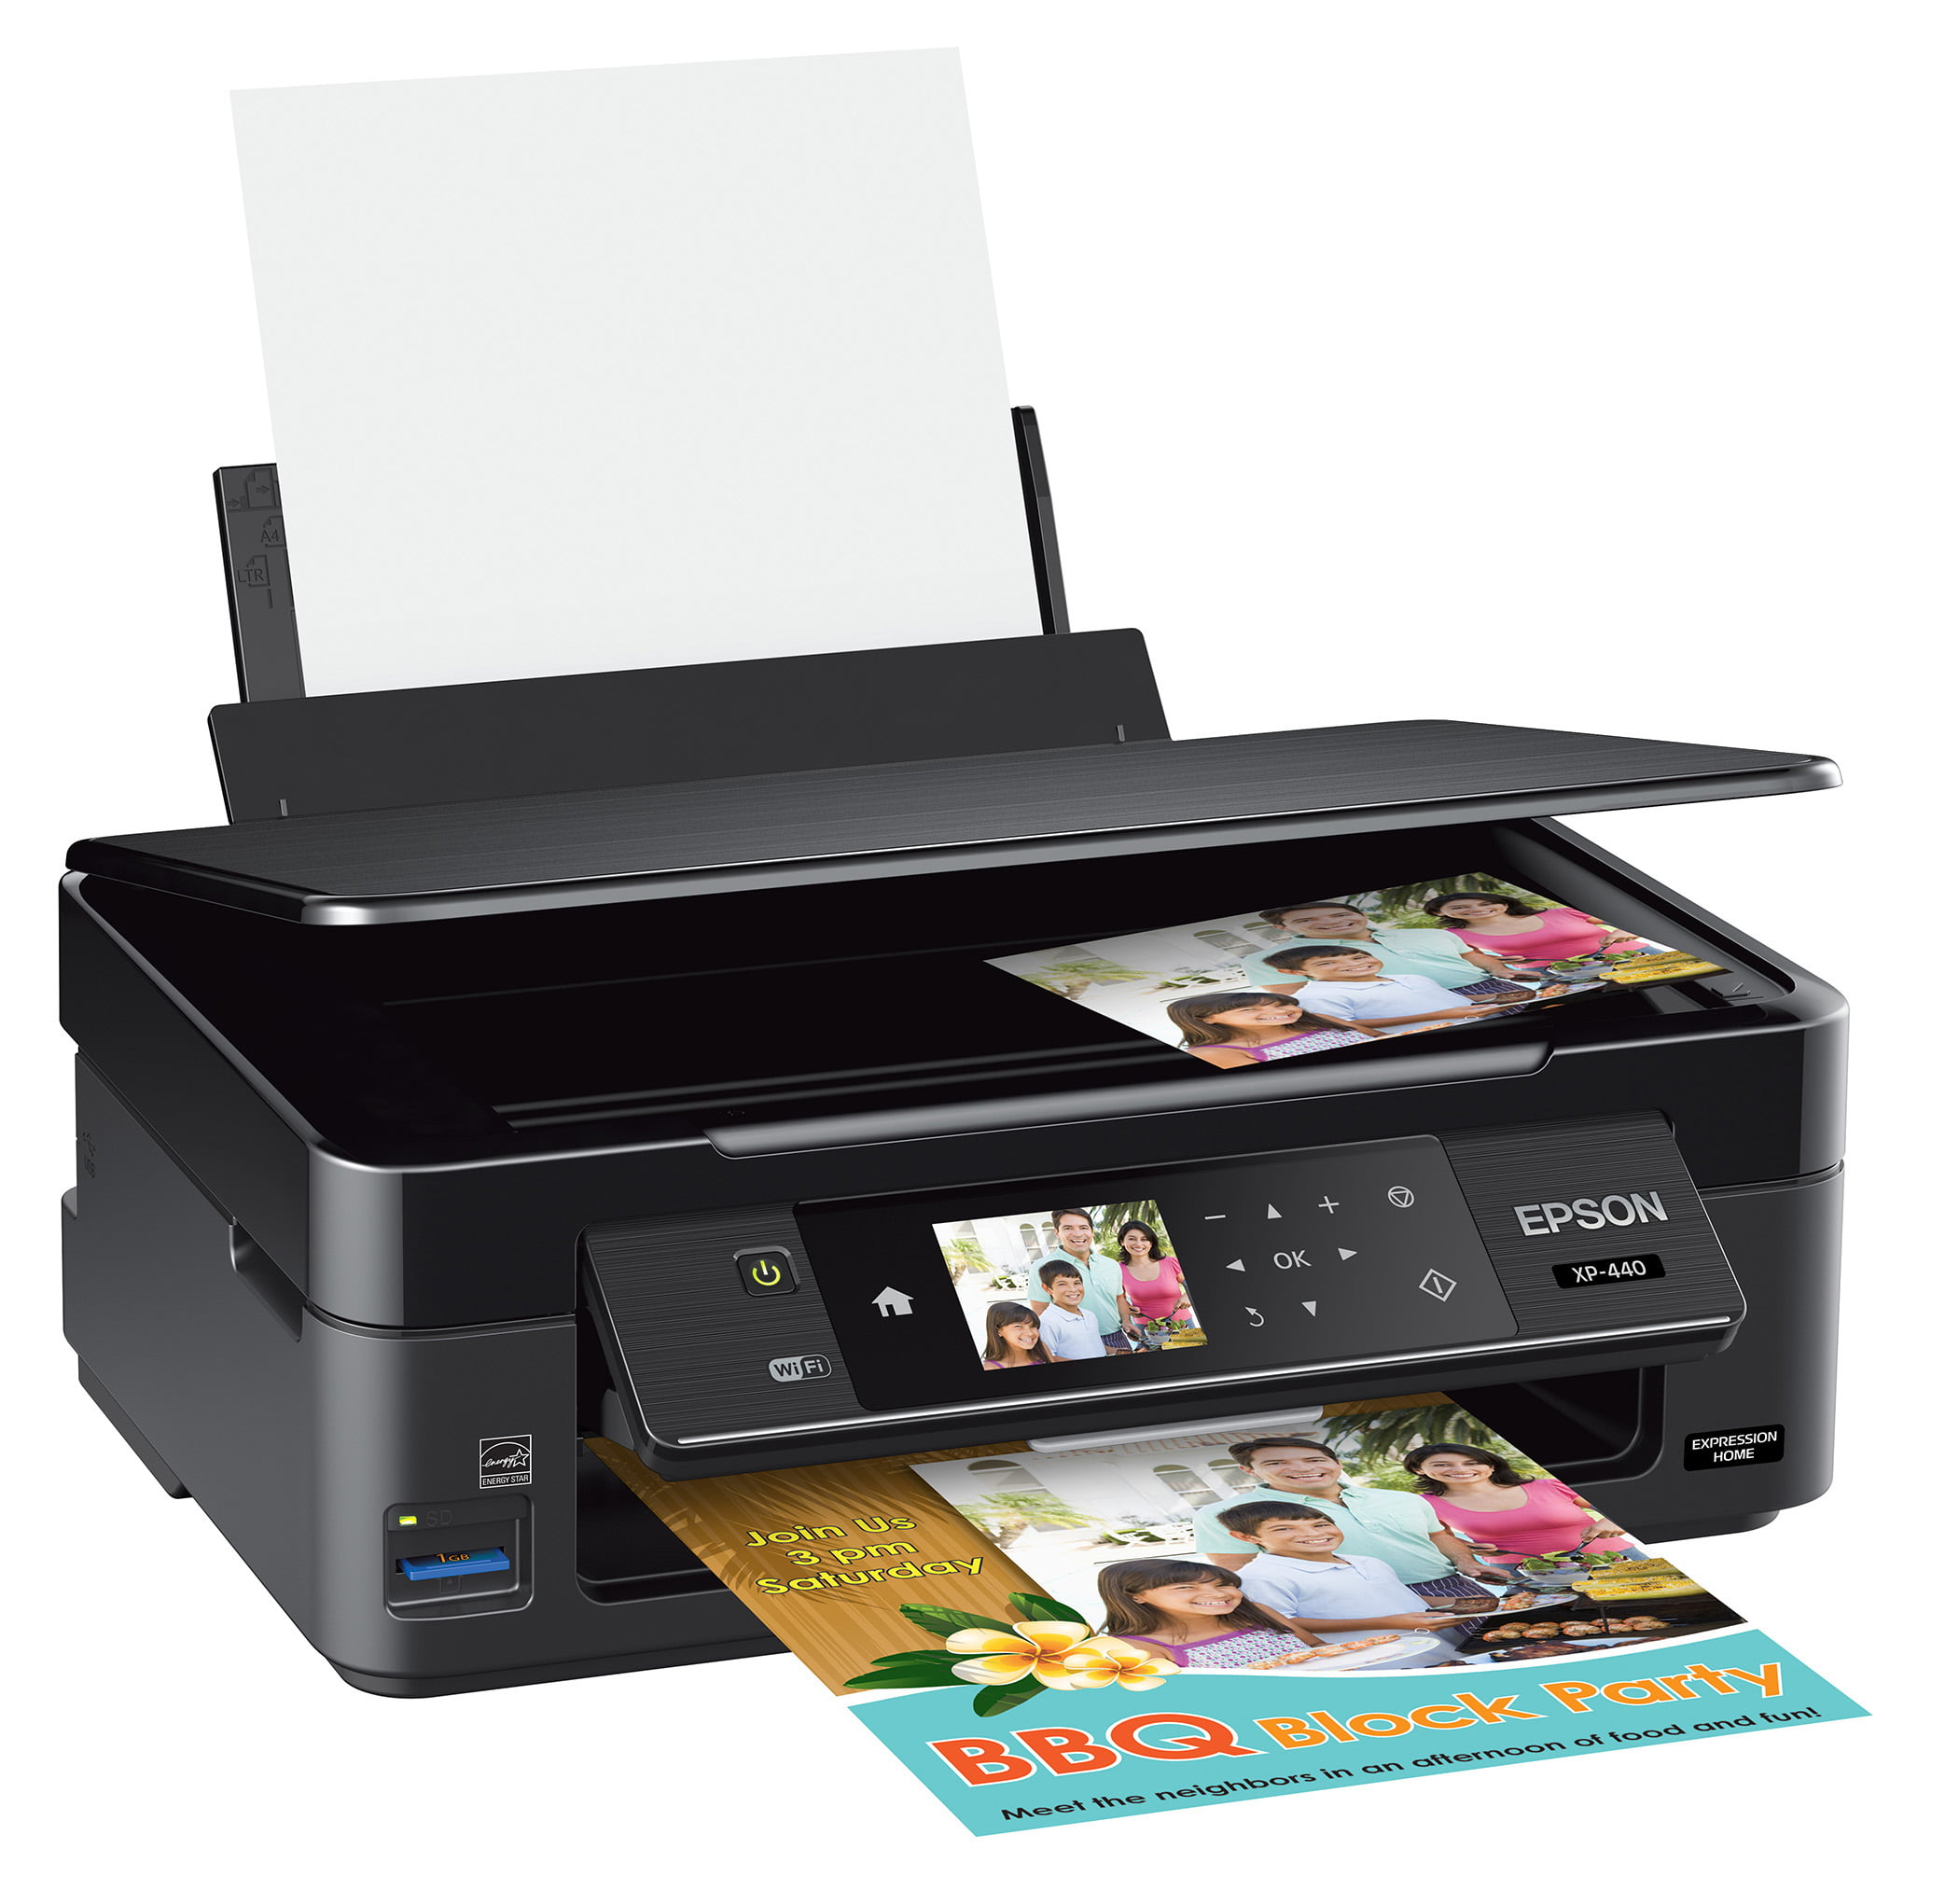 Epson Expression Home XP-440 Inkjet Multifunction Printer Color Plain Paper Print Desktop by Epson